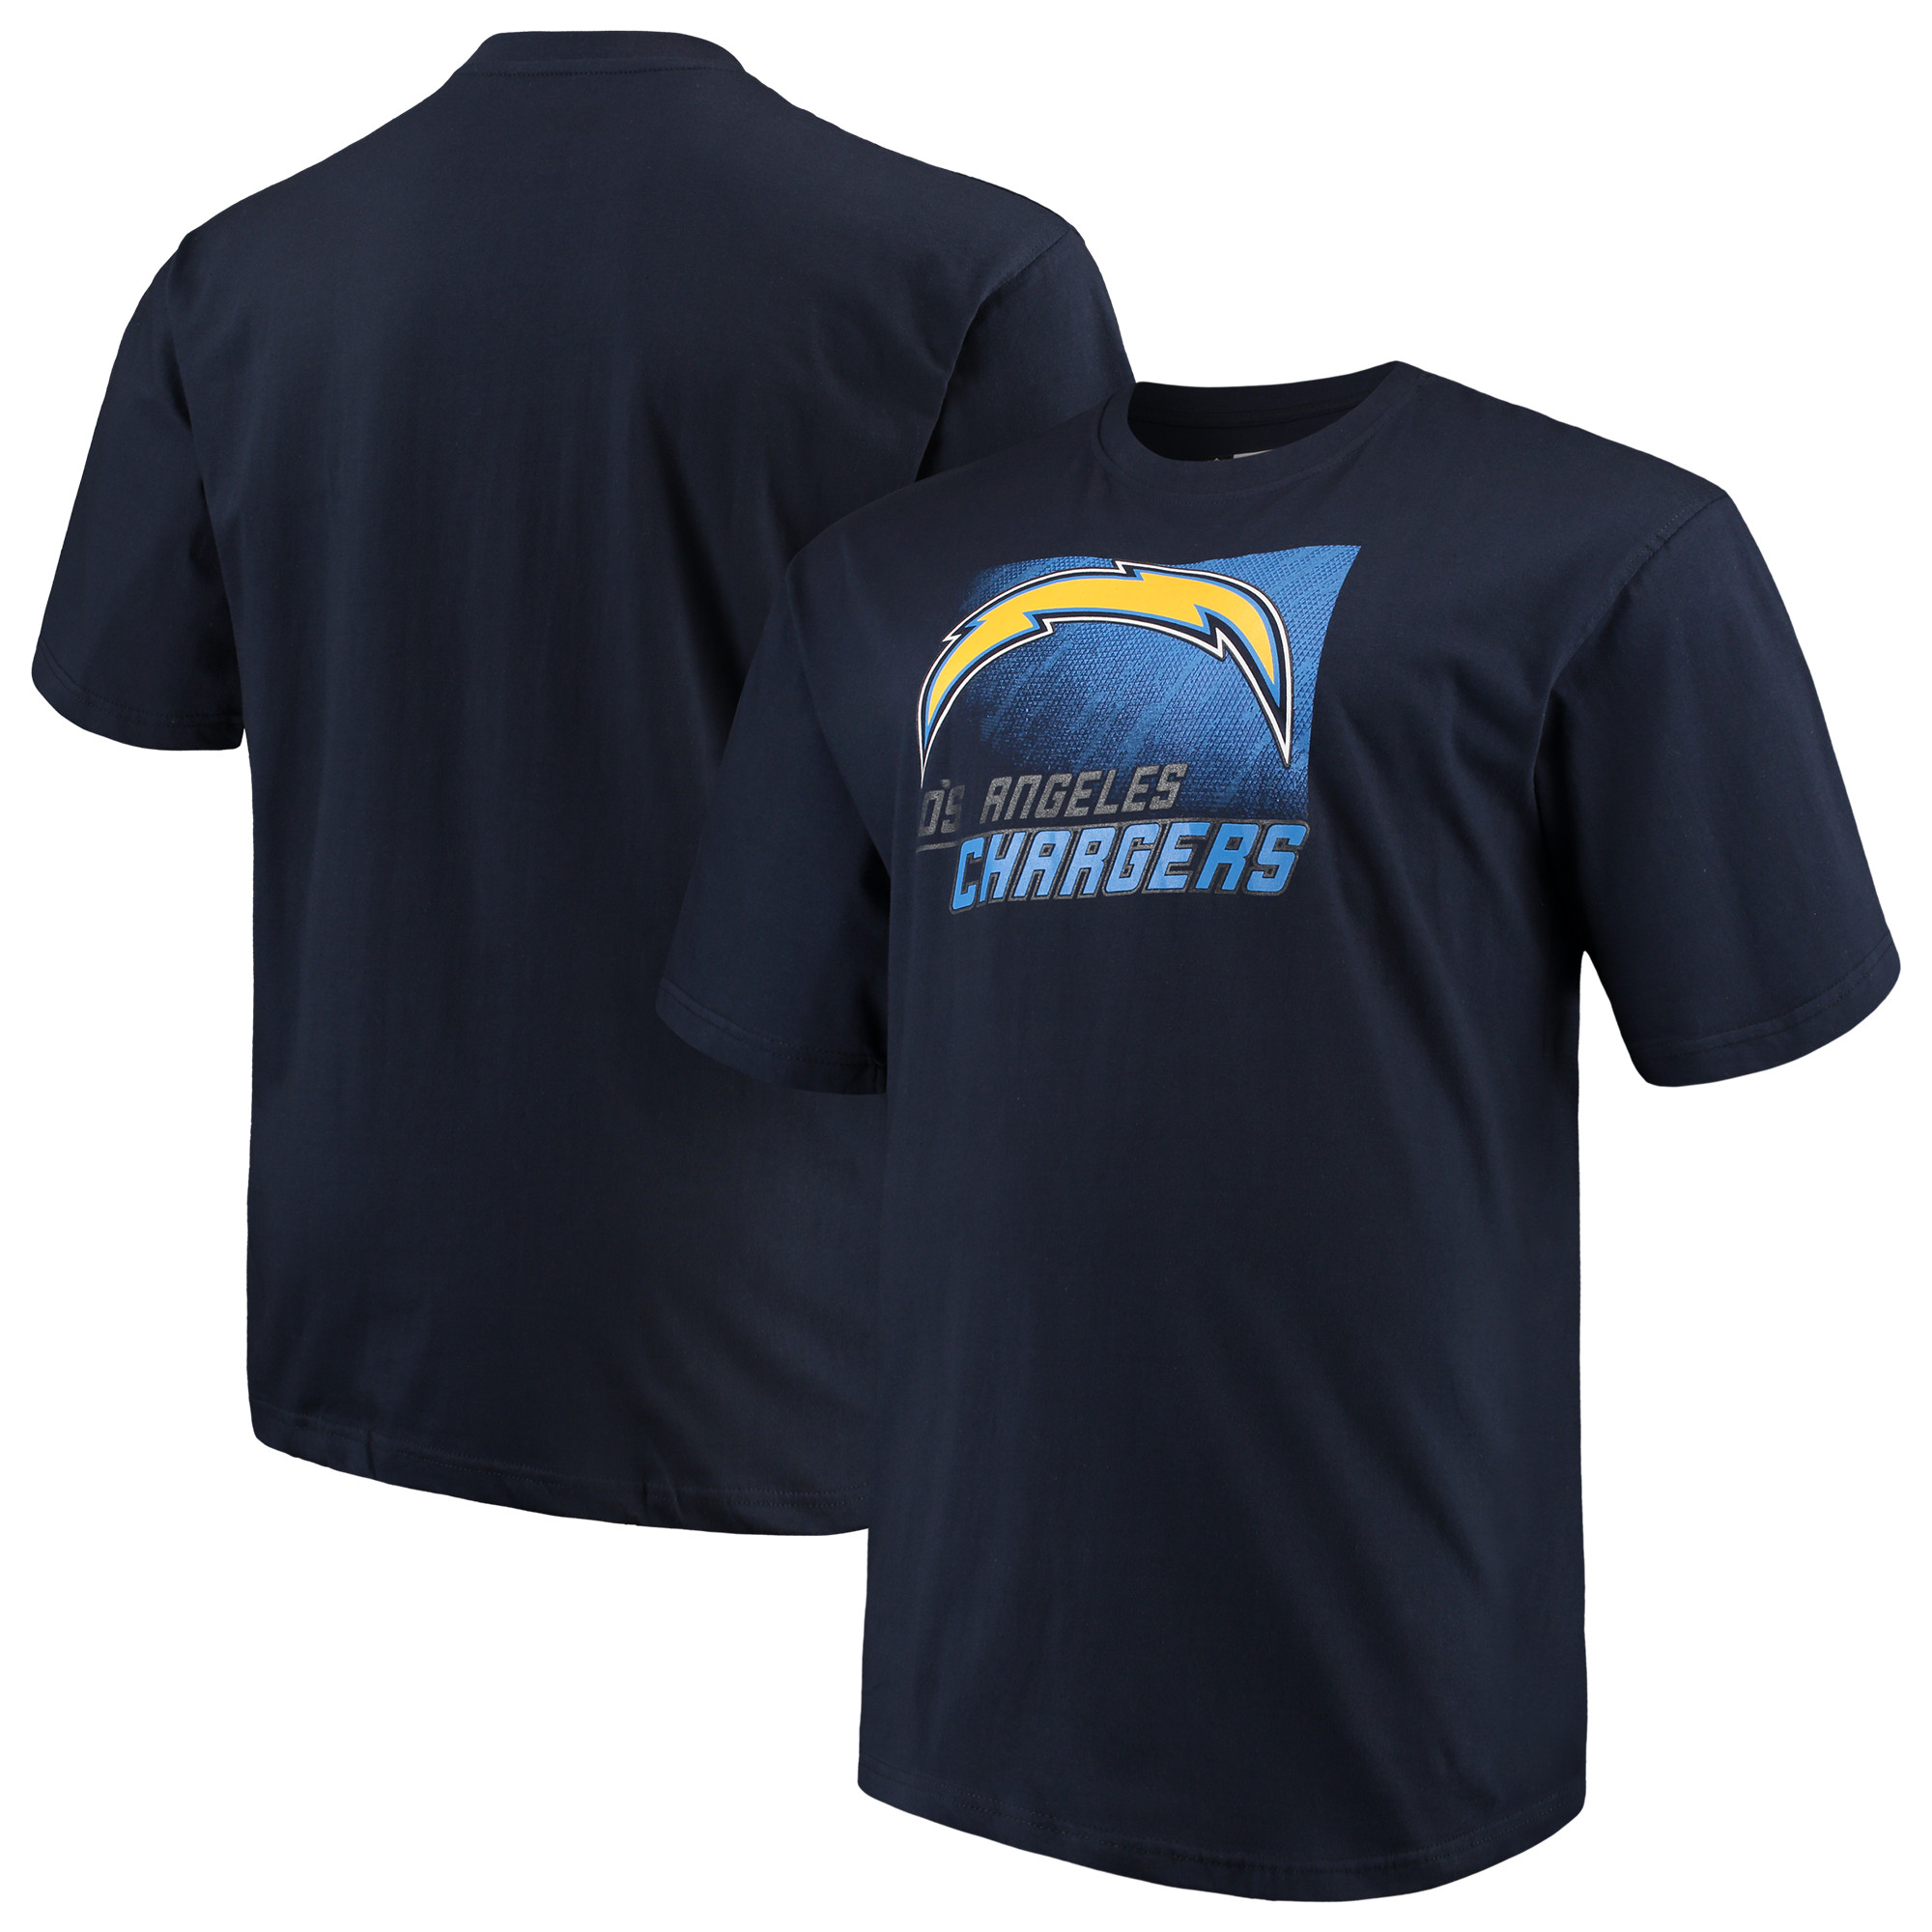 Men's Majestic Navy Los Angeles Chargers Big & Tall Reflective T-Shirt